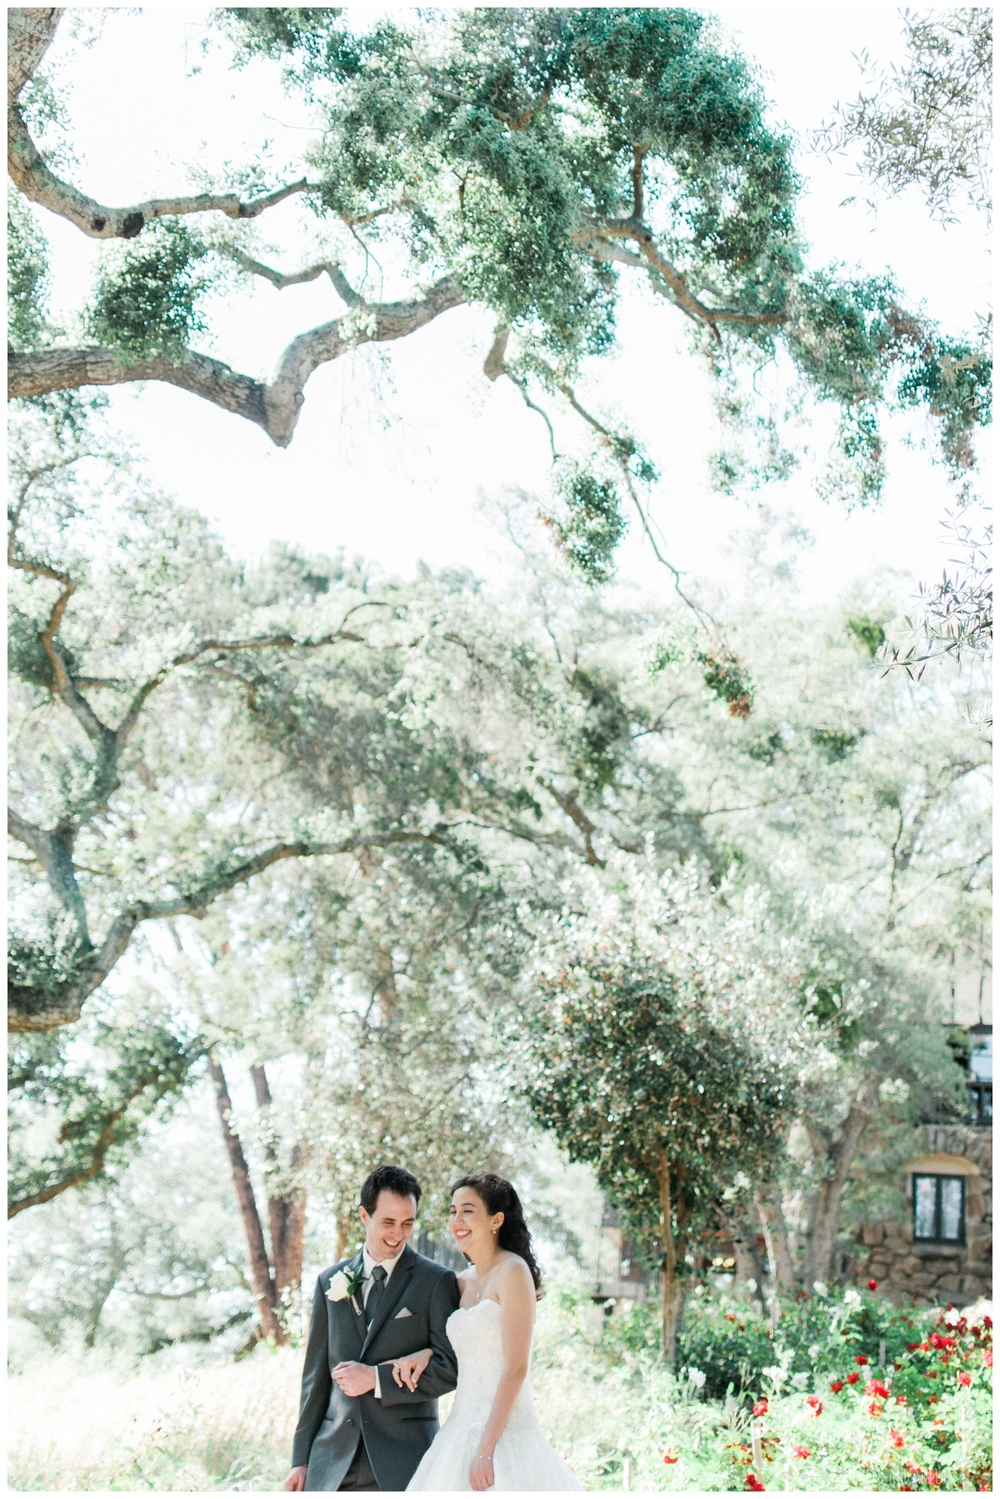 Mt Woodson Castle Wedding - Bride and Groom - San Diego Wedding Photographer - Whiskers and Willow Photography